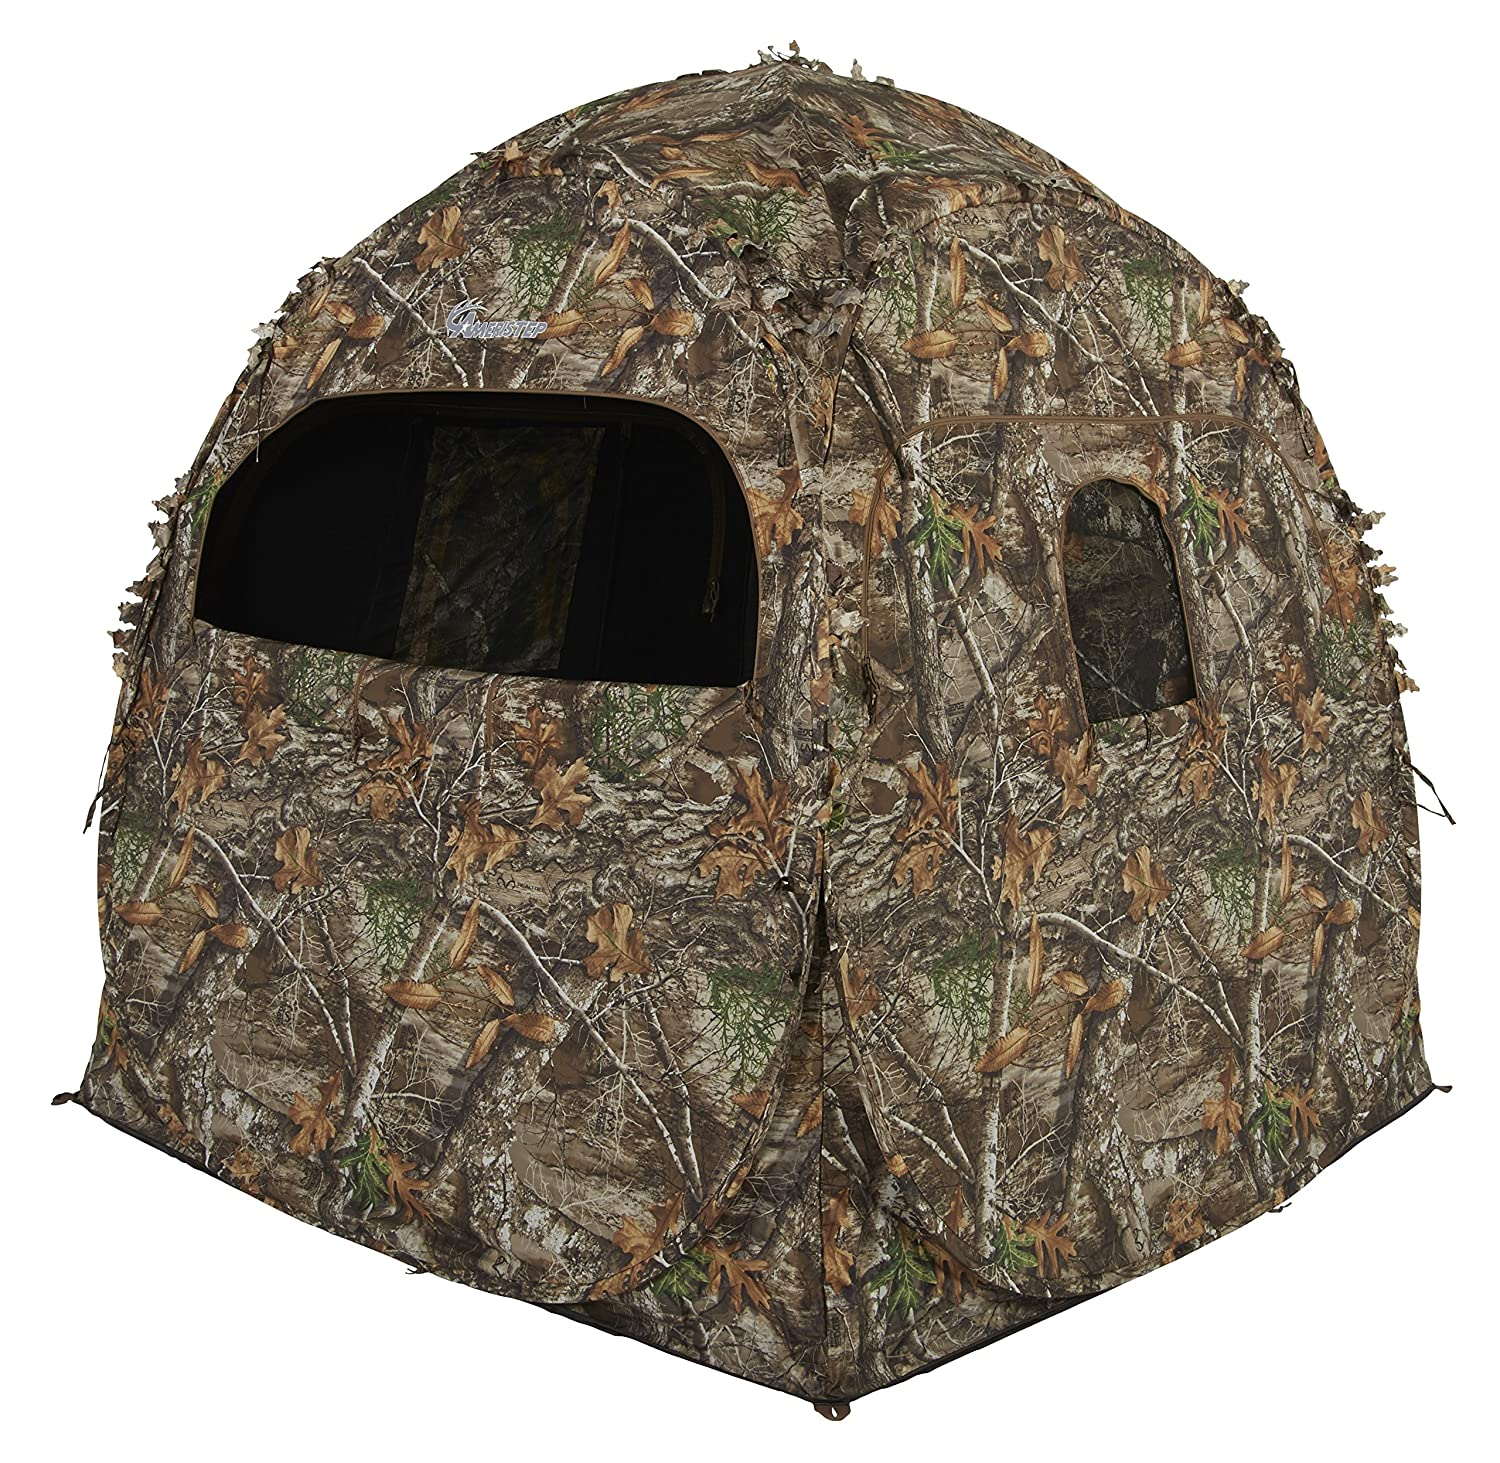 camouflage it deer gallery hunting camo blinds tent s archery ground what outhouse person blind